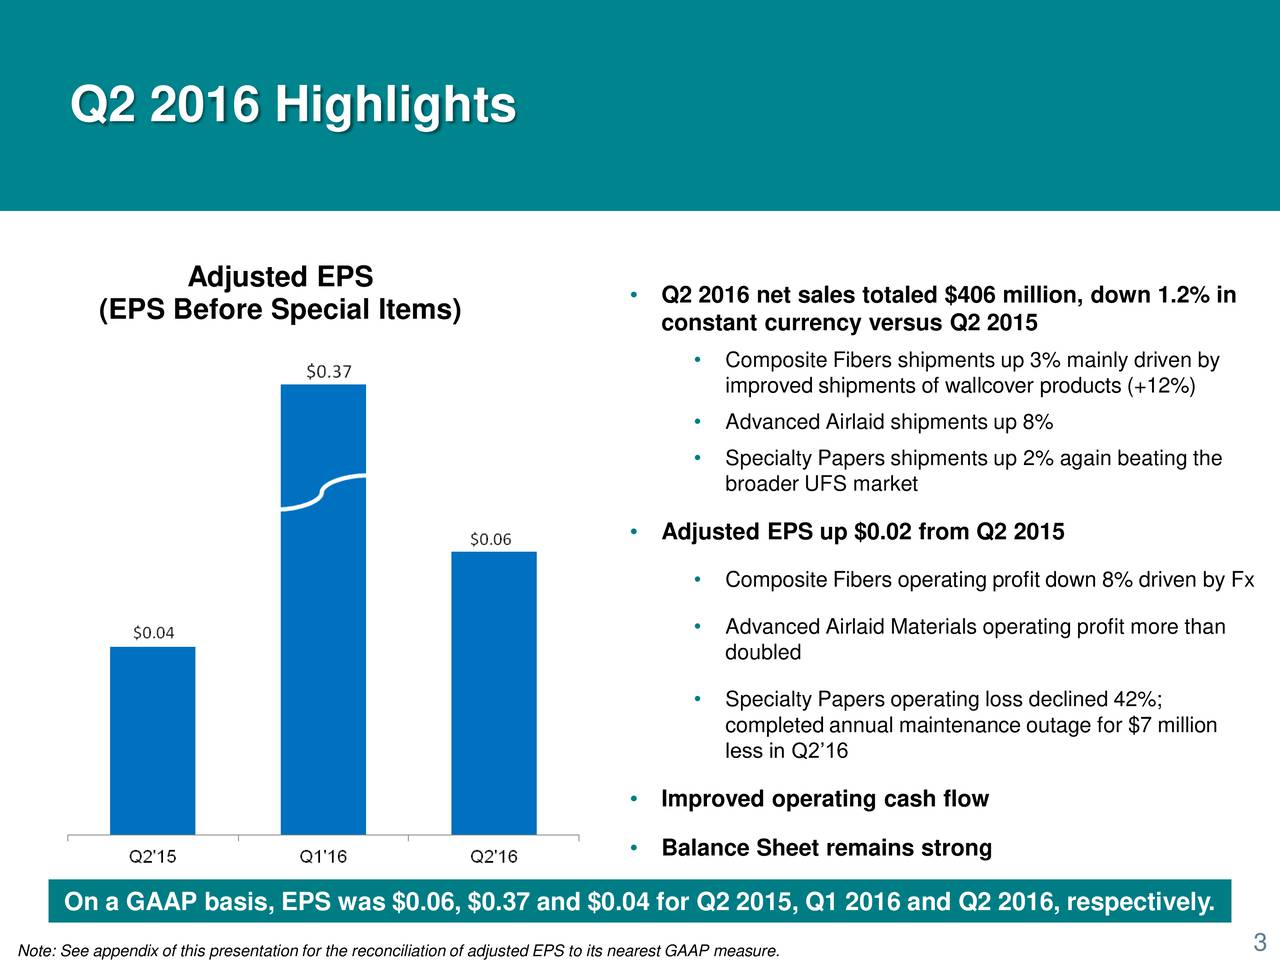 Adjusted EPS  Q2 2016 net sales totaled $406 million, down 1.2% in (EPS Before Special Items) constant currency versus Q2 2015 Composite Fibers shipments up 3% mainly driven by improved shipments of wallcover products (+12%) Advanced Airlaid shipments up 8% Specialty Papers shipments up 2% again beating the broader UFS market Adjusted EPS up $0.02 from Q2 2015 Composite Fibers operating profit down 8% driven by Fx Advanced Airlaid Materials operating profit more than doubled Specialty Papers operating loss declined 42%; completed annual maintenance outage for $7 million less in Q216 Improved operating cash flow Balance Sheet remains strong On a GAAP basis, EPS was $0.06, $0.37 and $0.04 for Q2 2015, Q1 2016 and Q2 2016, respectively.